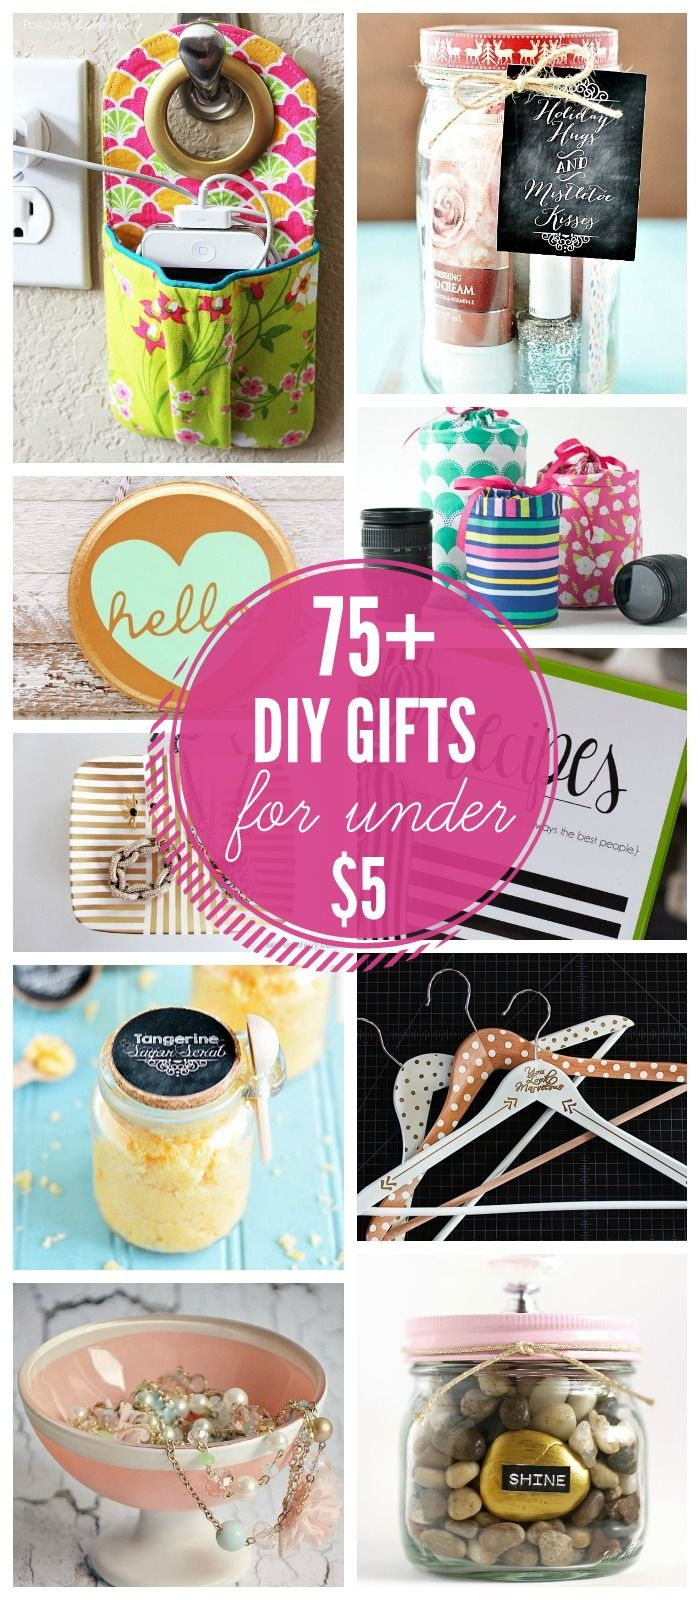 Wedding Gift Ideas Under 50 Dollars : Handmade Gifts on Pinterest DIY gifts, DIY decorating and DIY ...